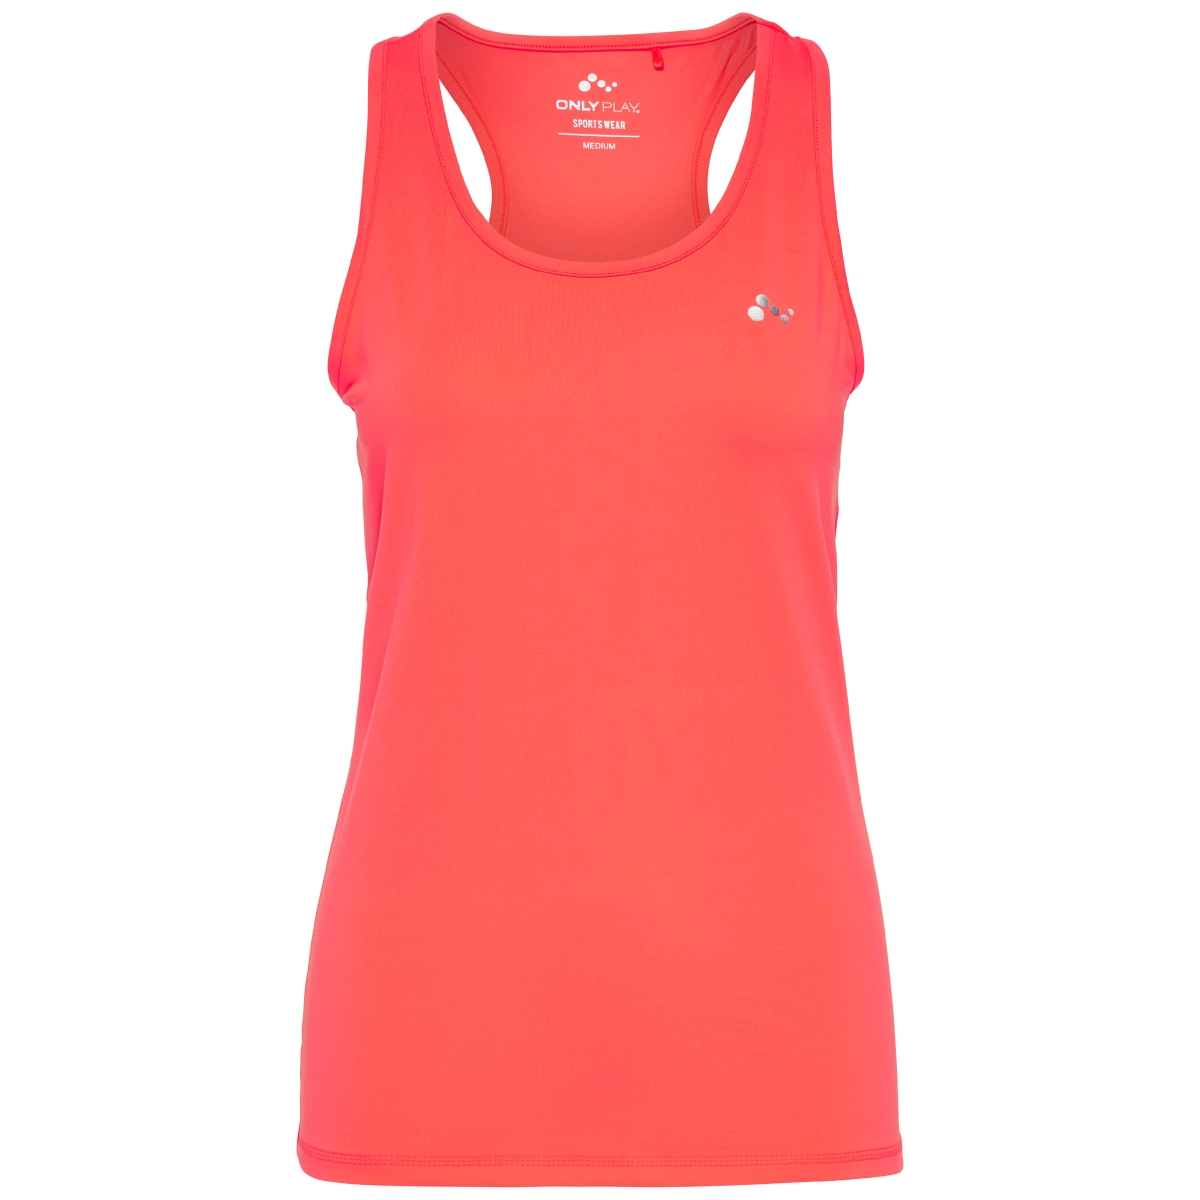 onpclaire plain sl training  top 15103788 only play sport top bright coral